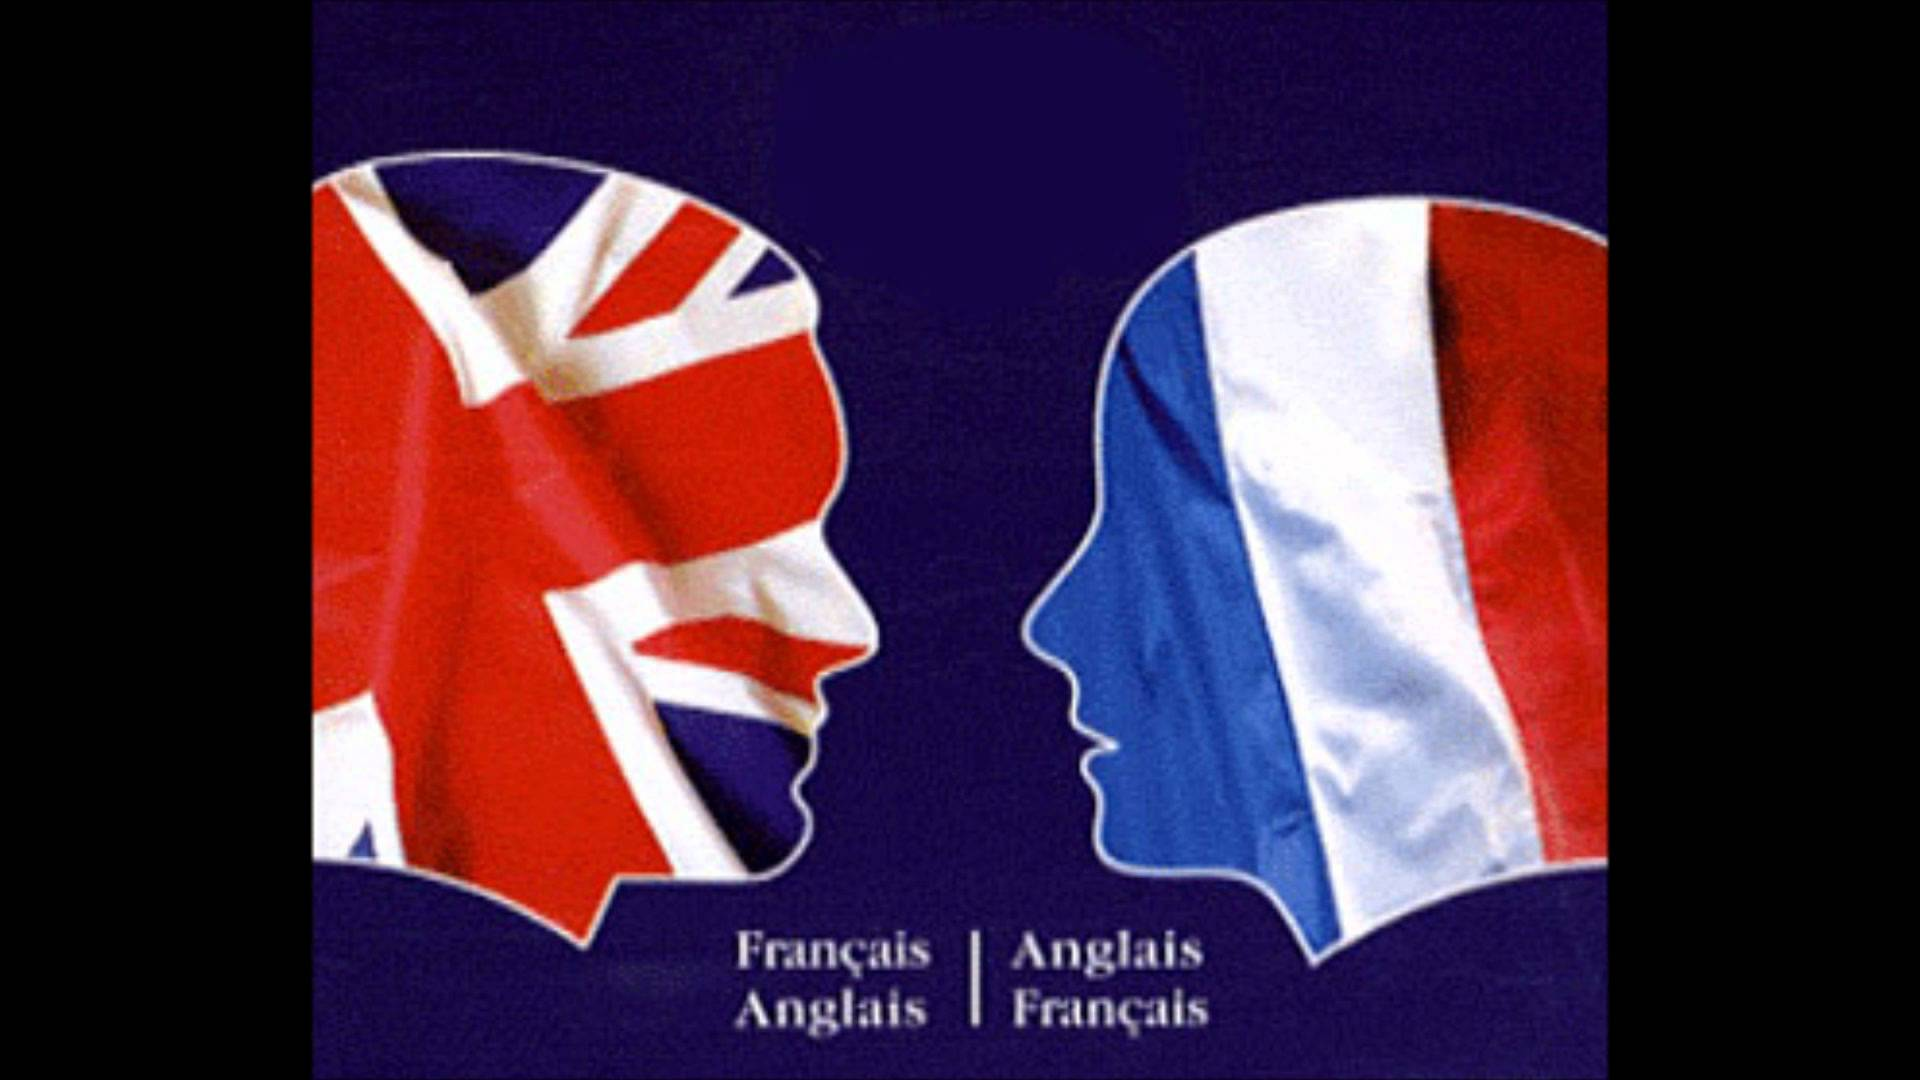 translate your documents from English to French and vis versa